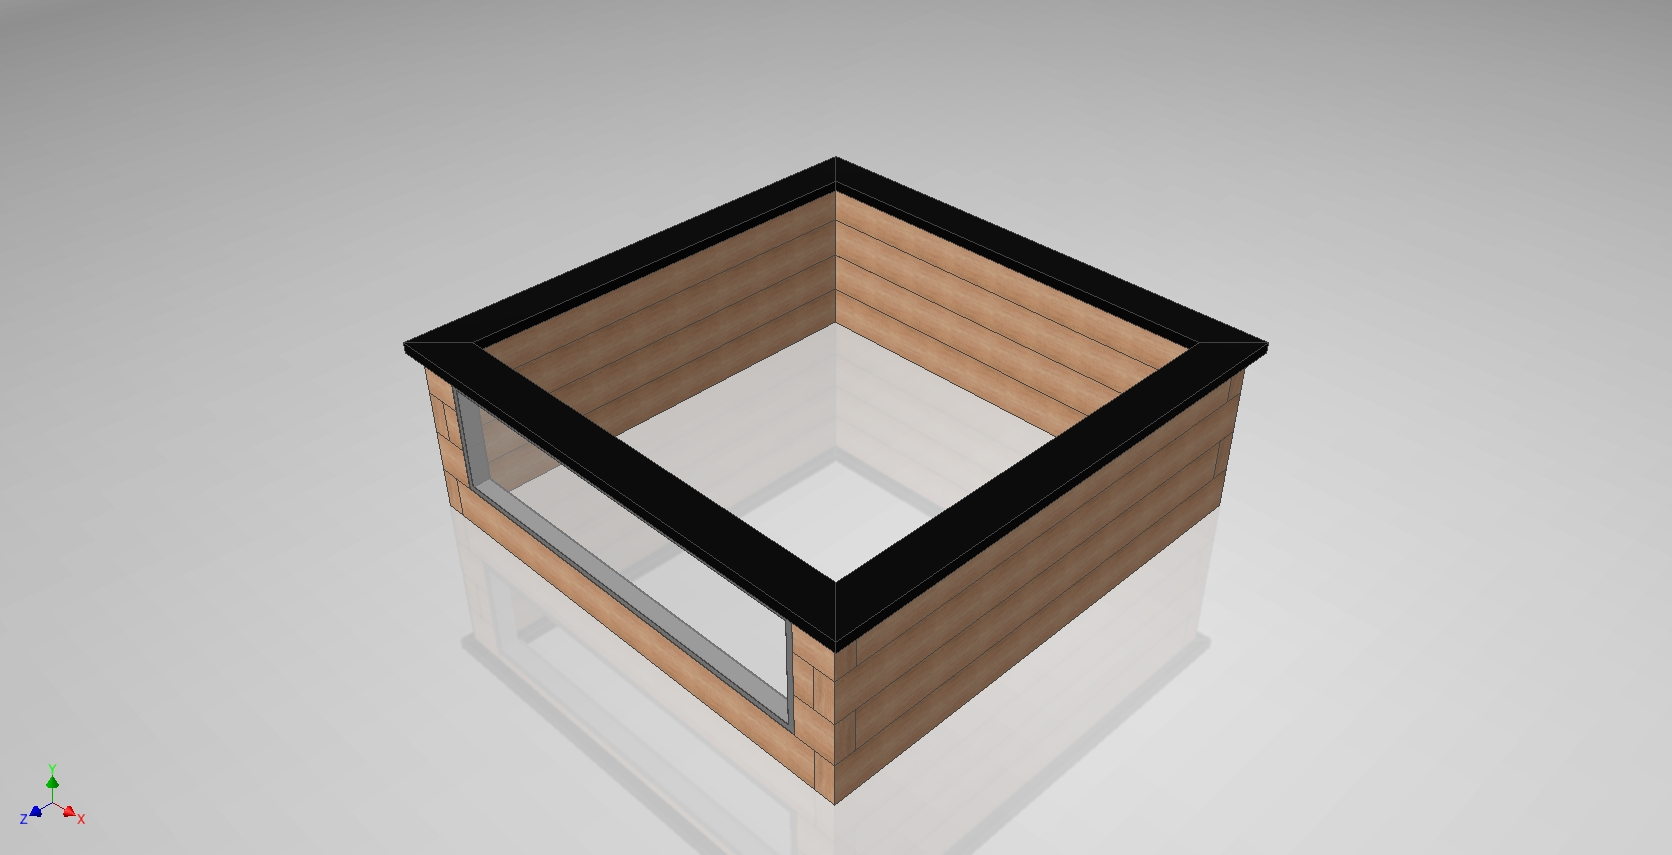 Concept Design Wooden Sleeper Pond Kit With Window